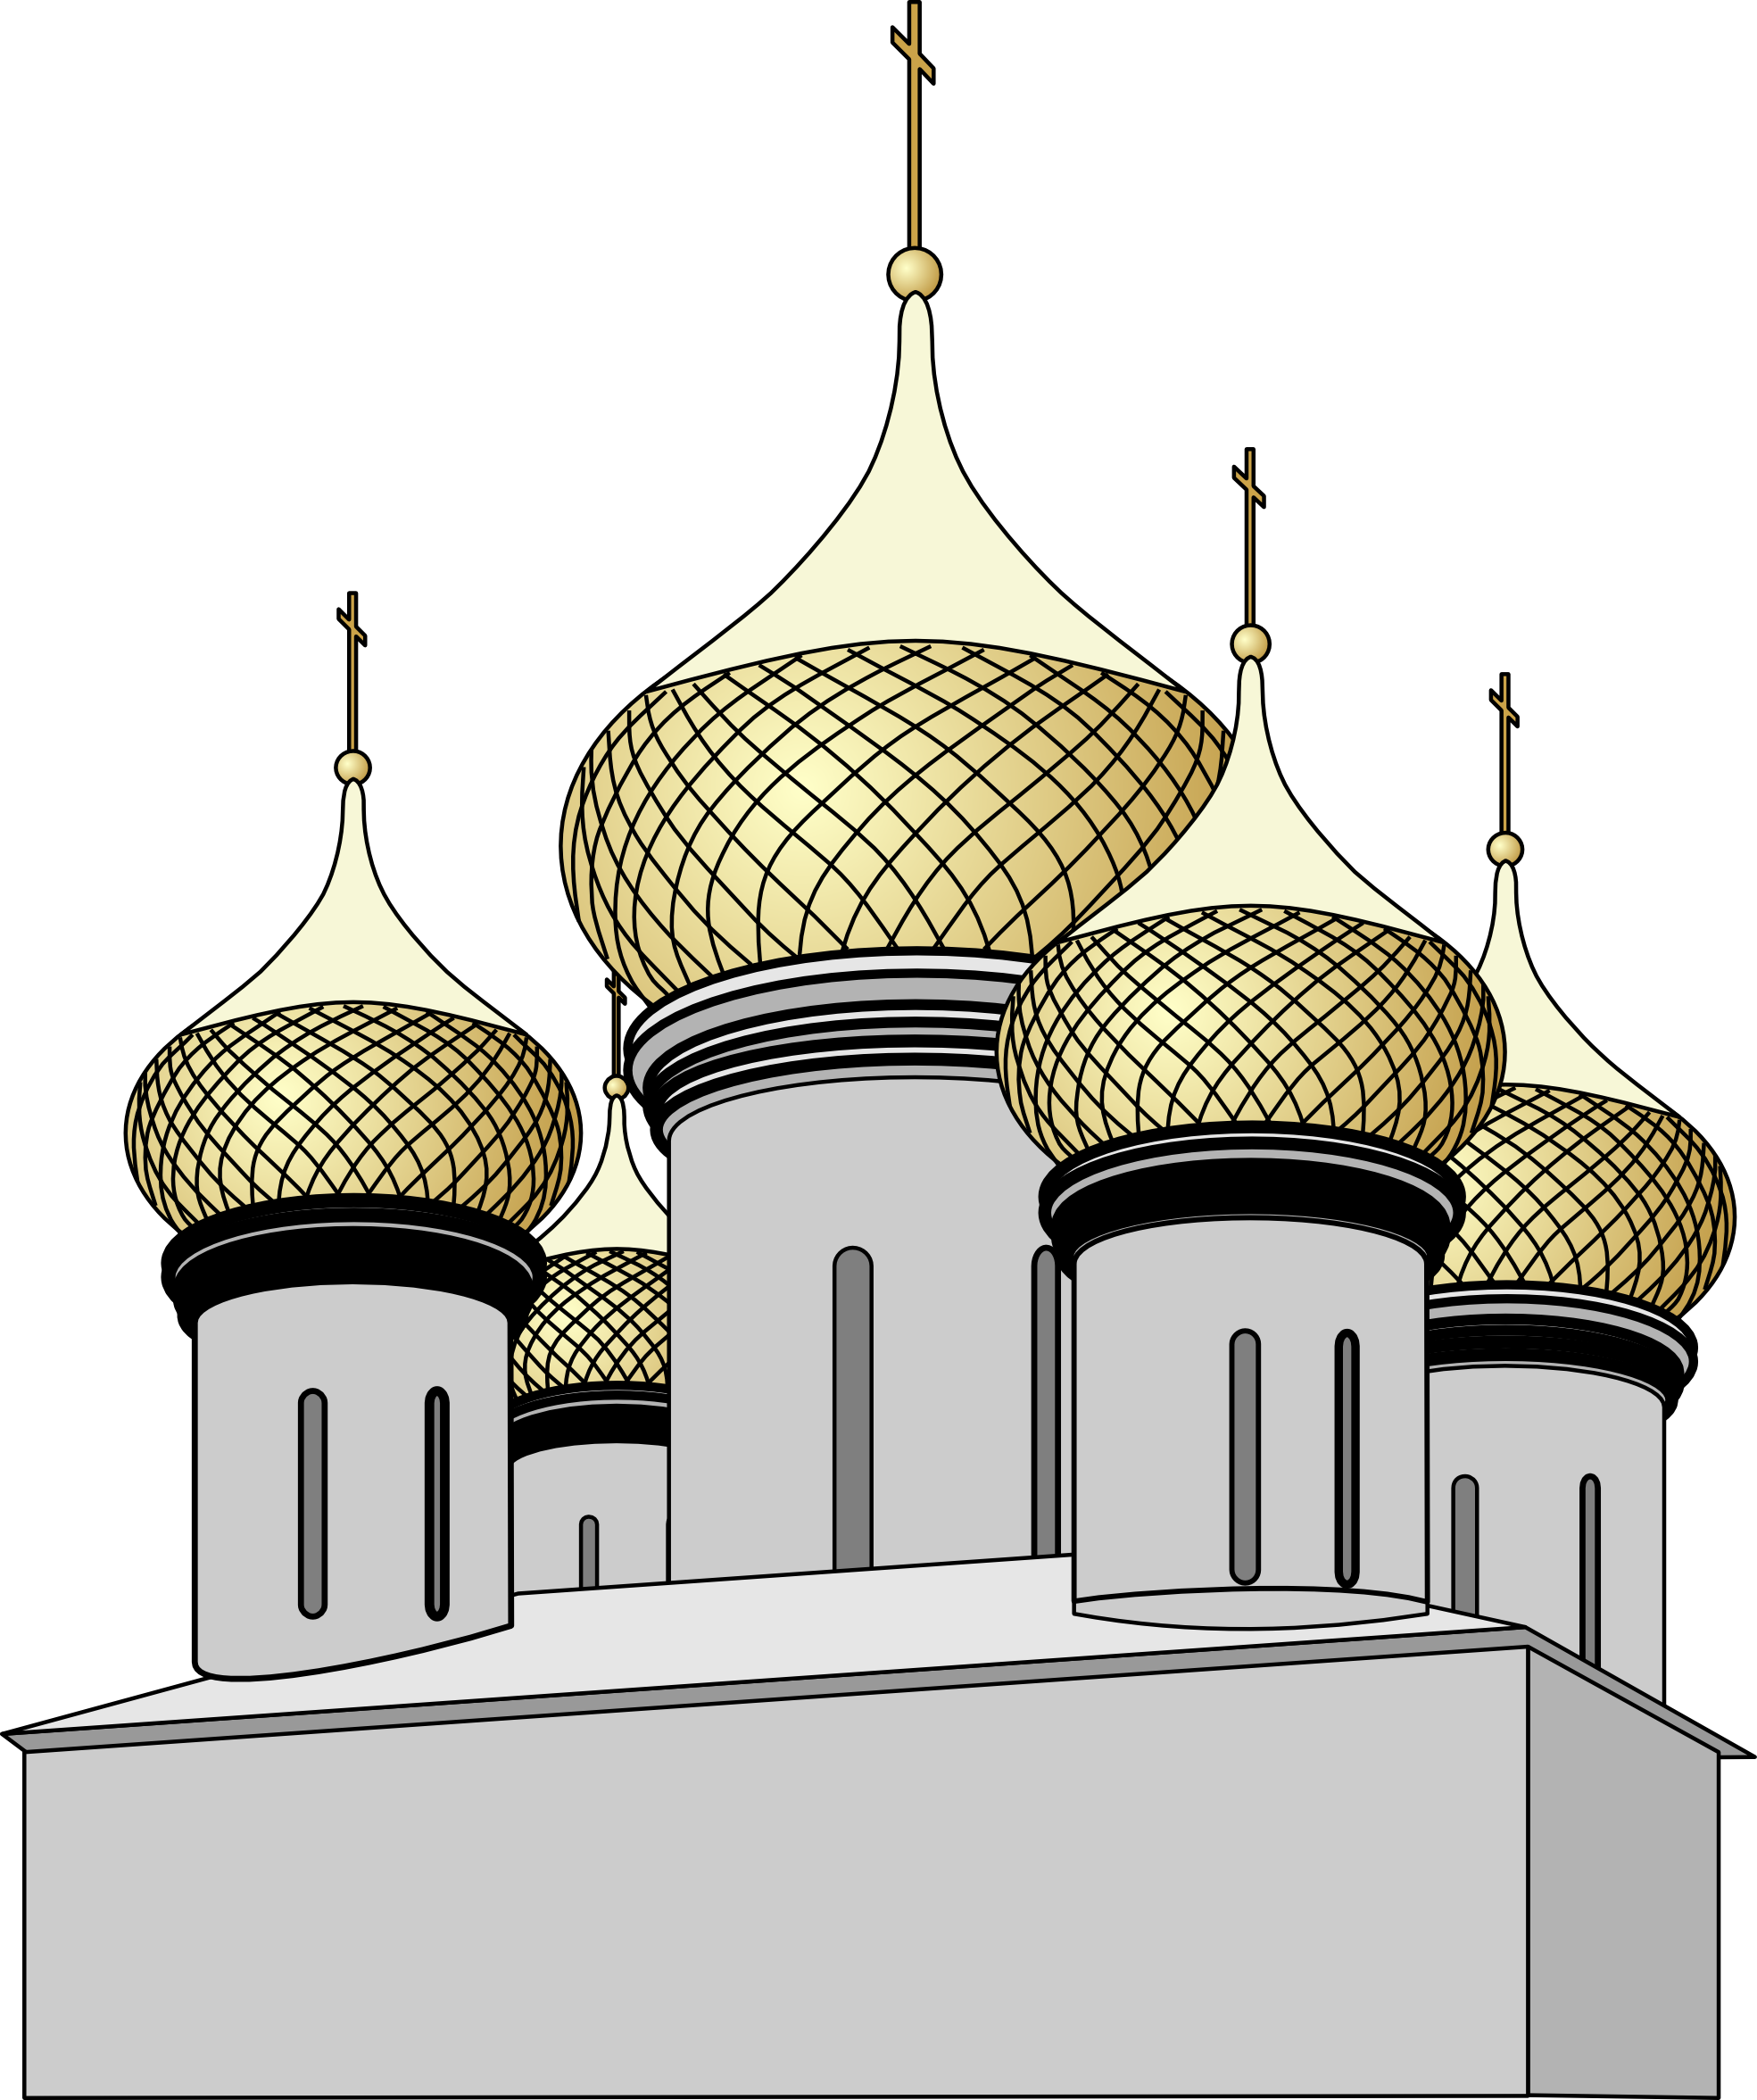 Free Mosque Cliparts, Download Free Clip Art, Free Clip Art.